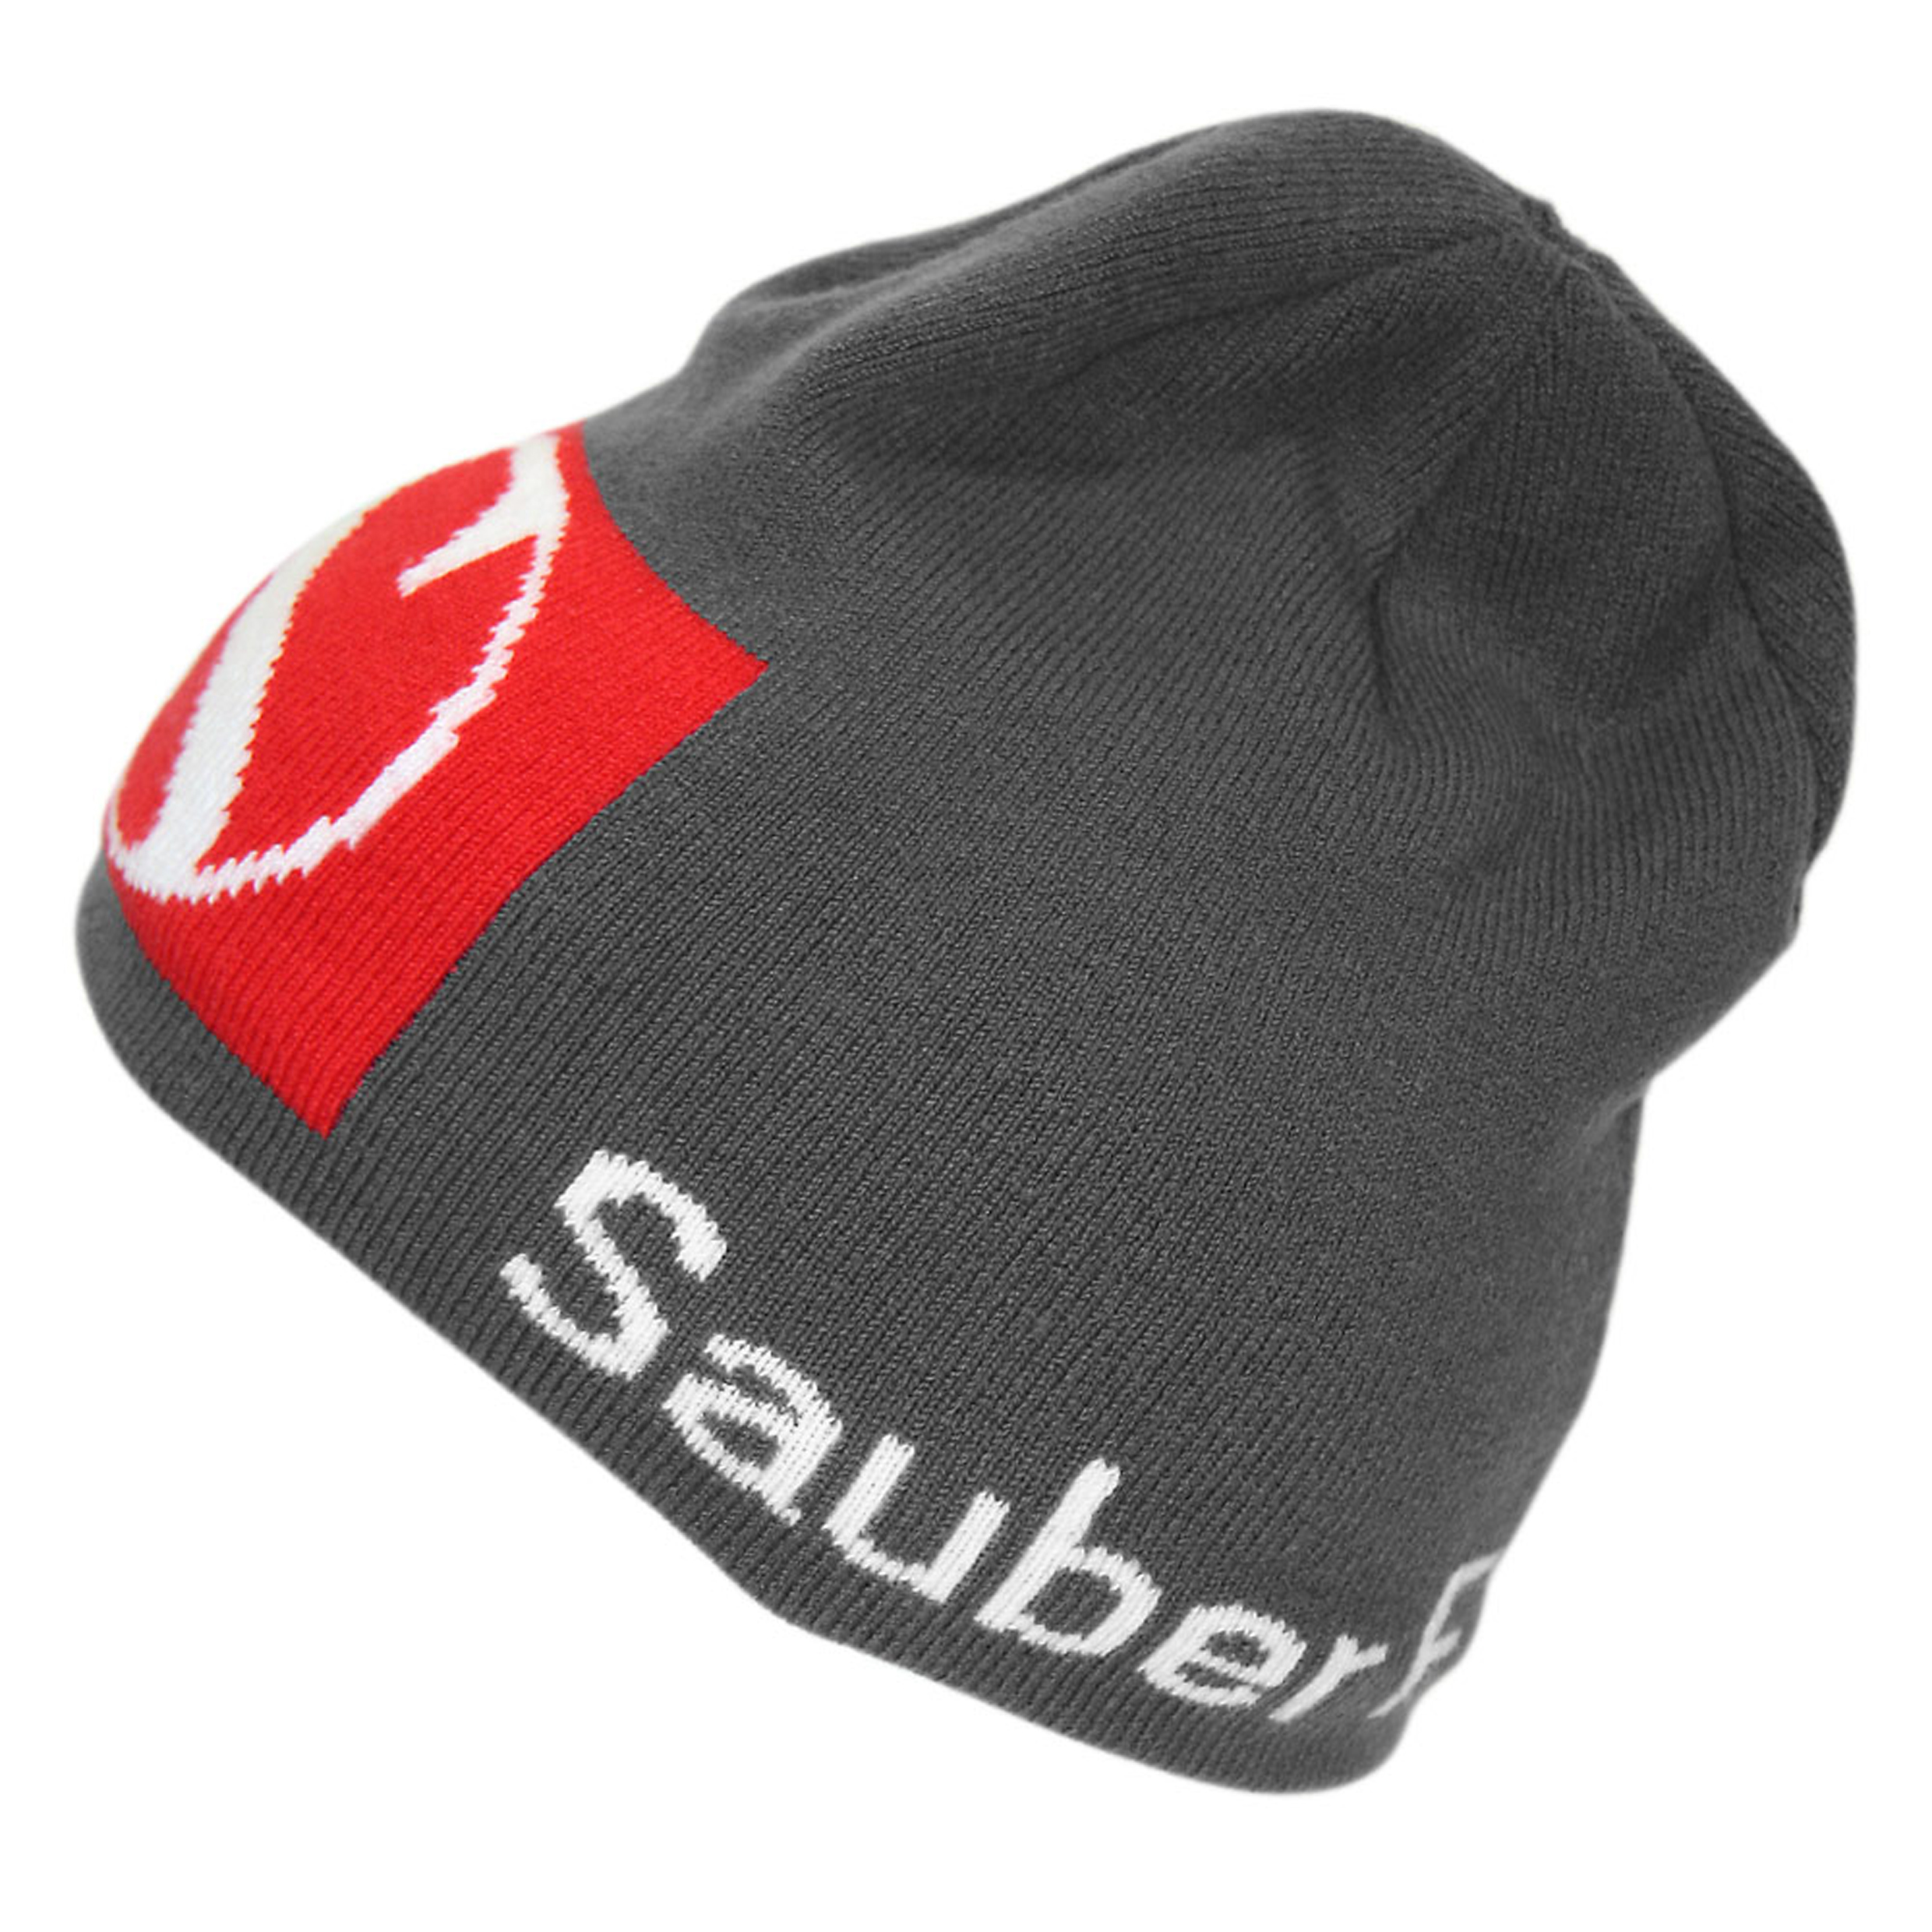 Sauber F1 Team Beanie